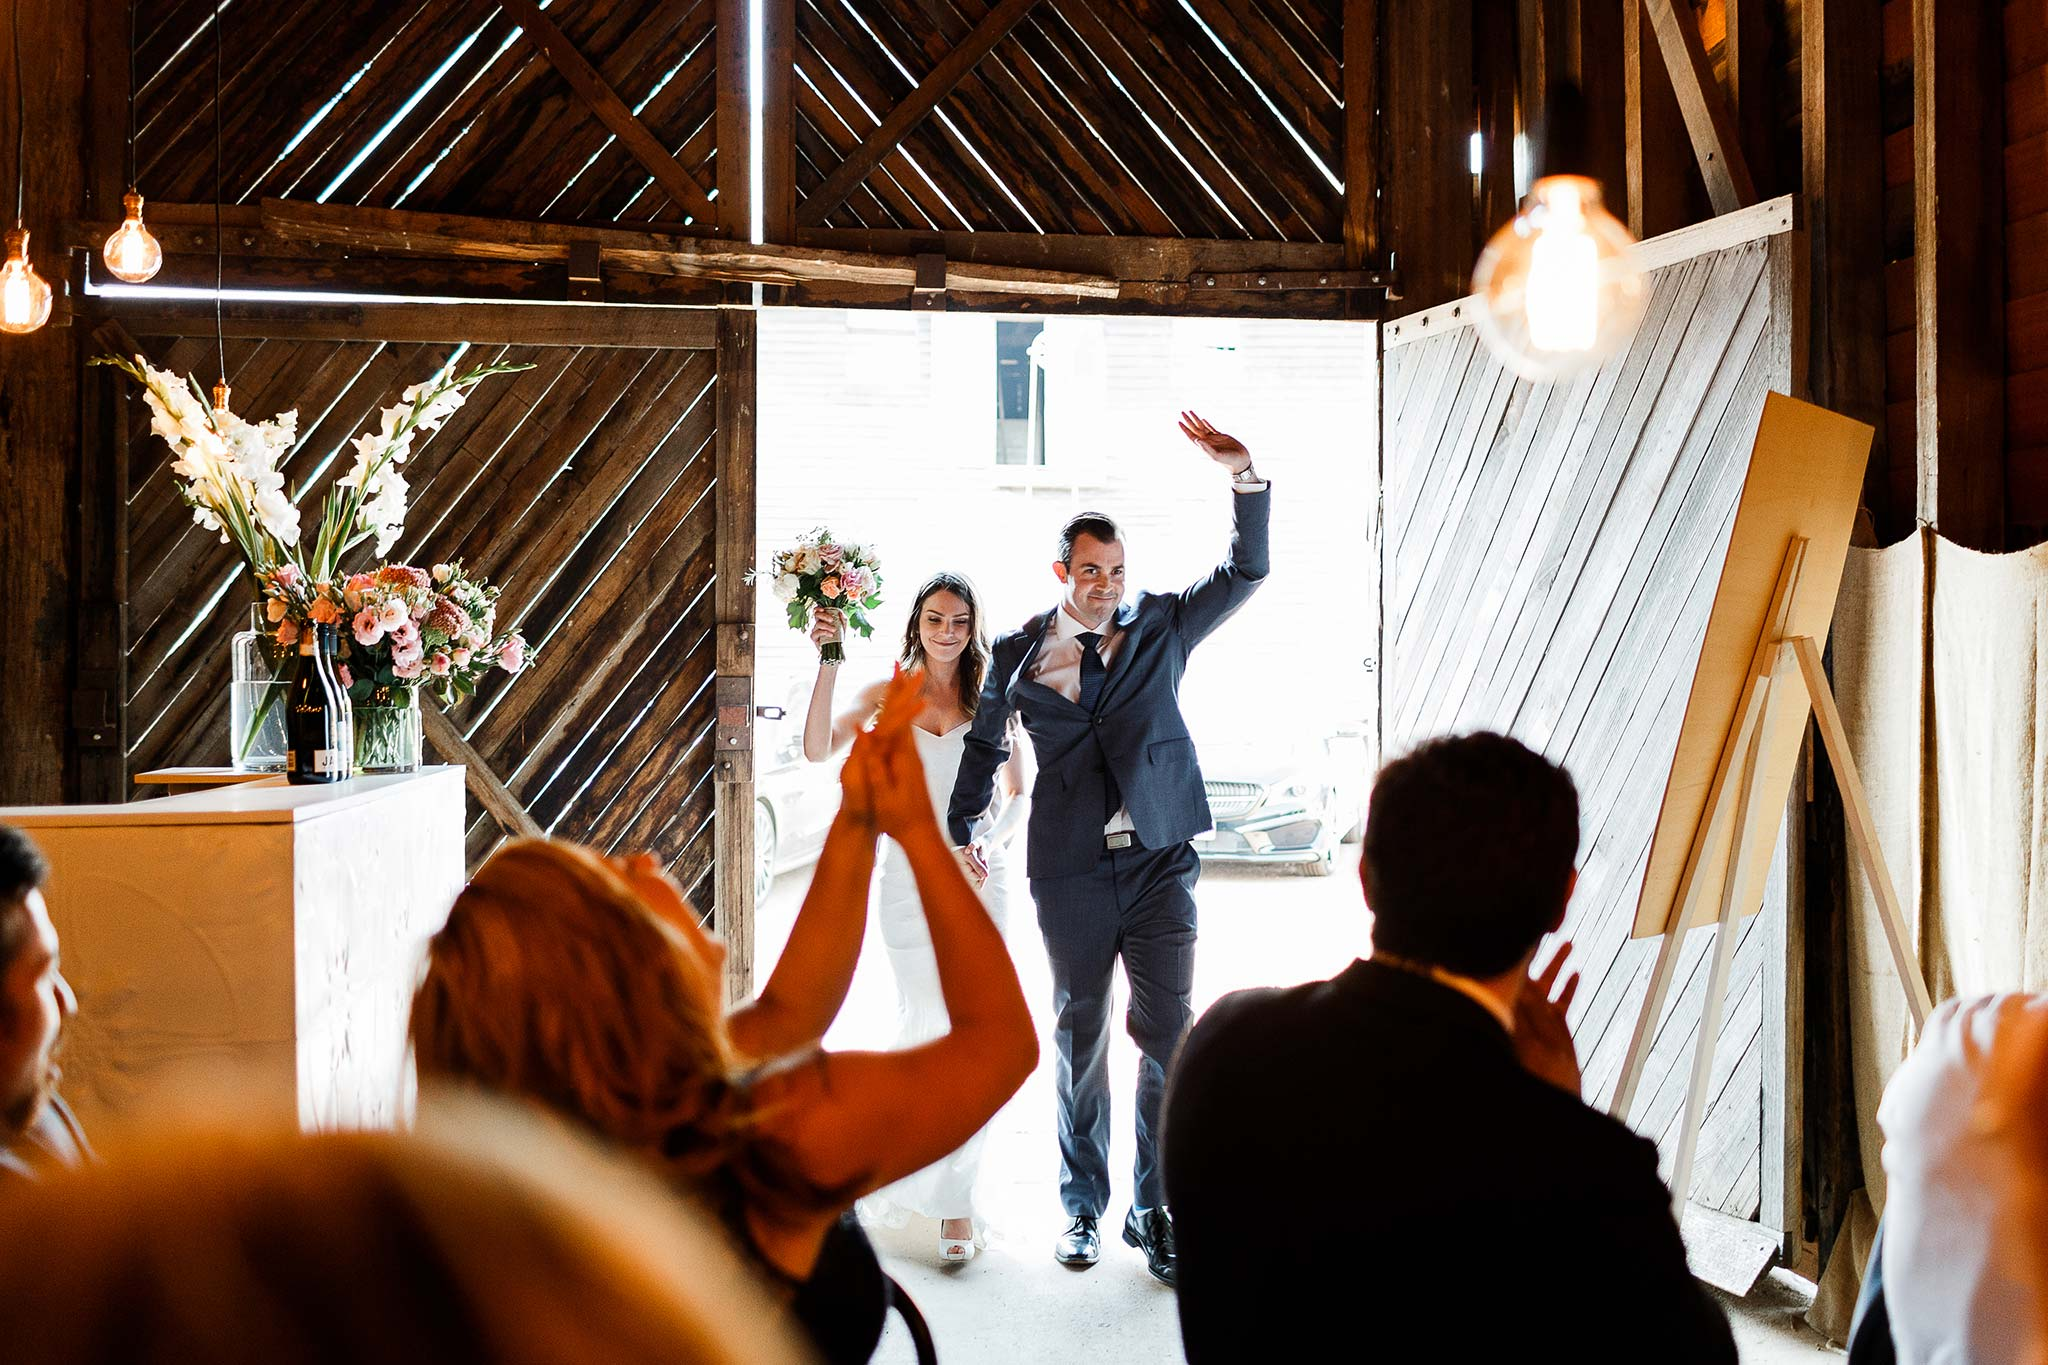 Launceston-Brickendon-barn-Wedding-Photographer-reception-entrance